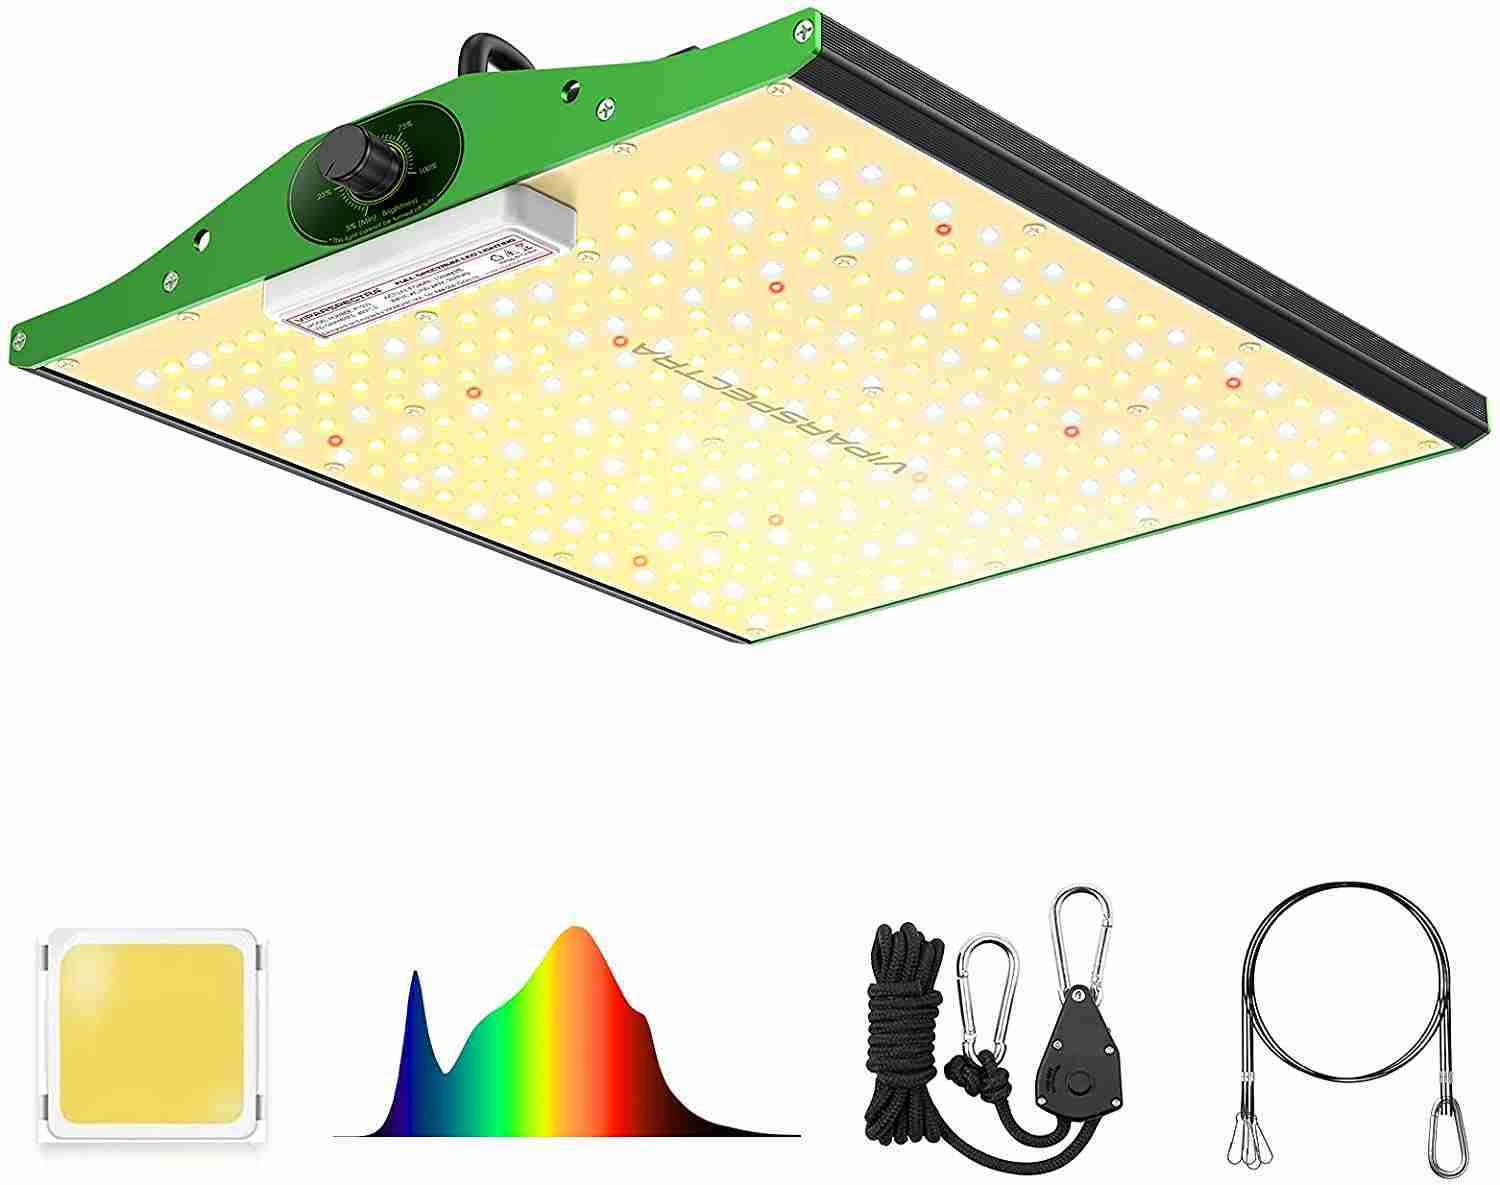 viparspectra p1000 led grow light isolated on white background